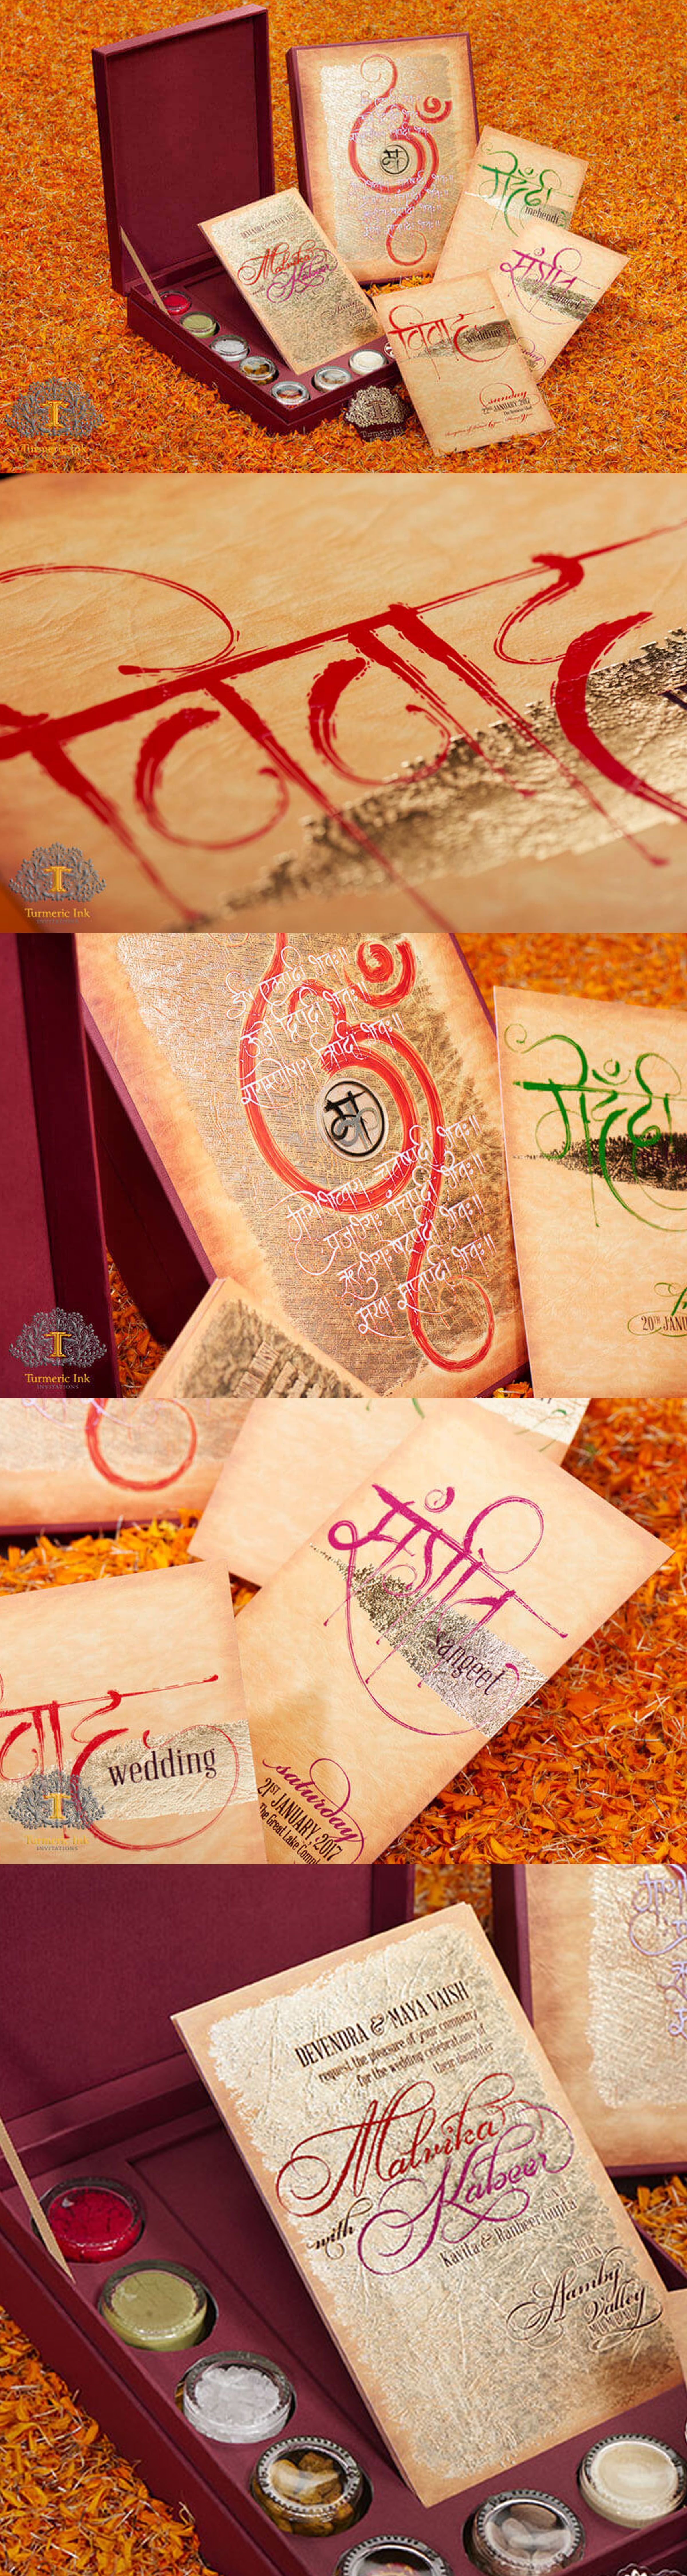 friends marriage invitation wordings india%0A Indian wedding ceremony details   Indian Wedding Invitations and Wedding  Stationary   Pinterest   Indian wedding ceremony  Detail and Weddings